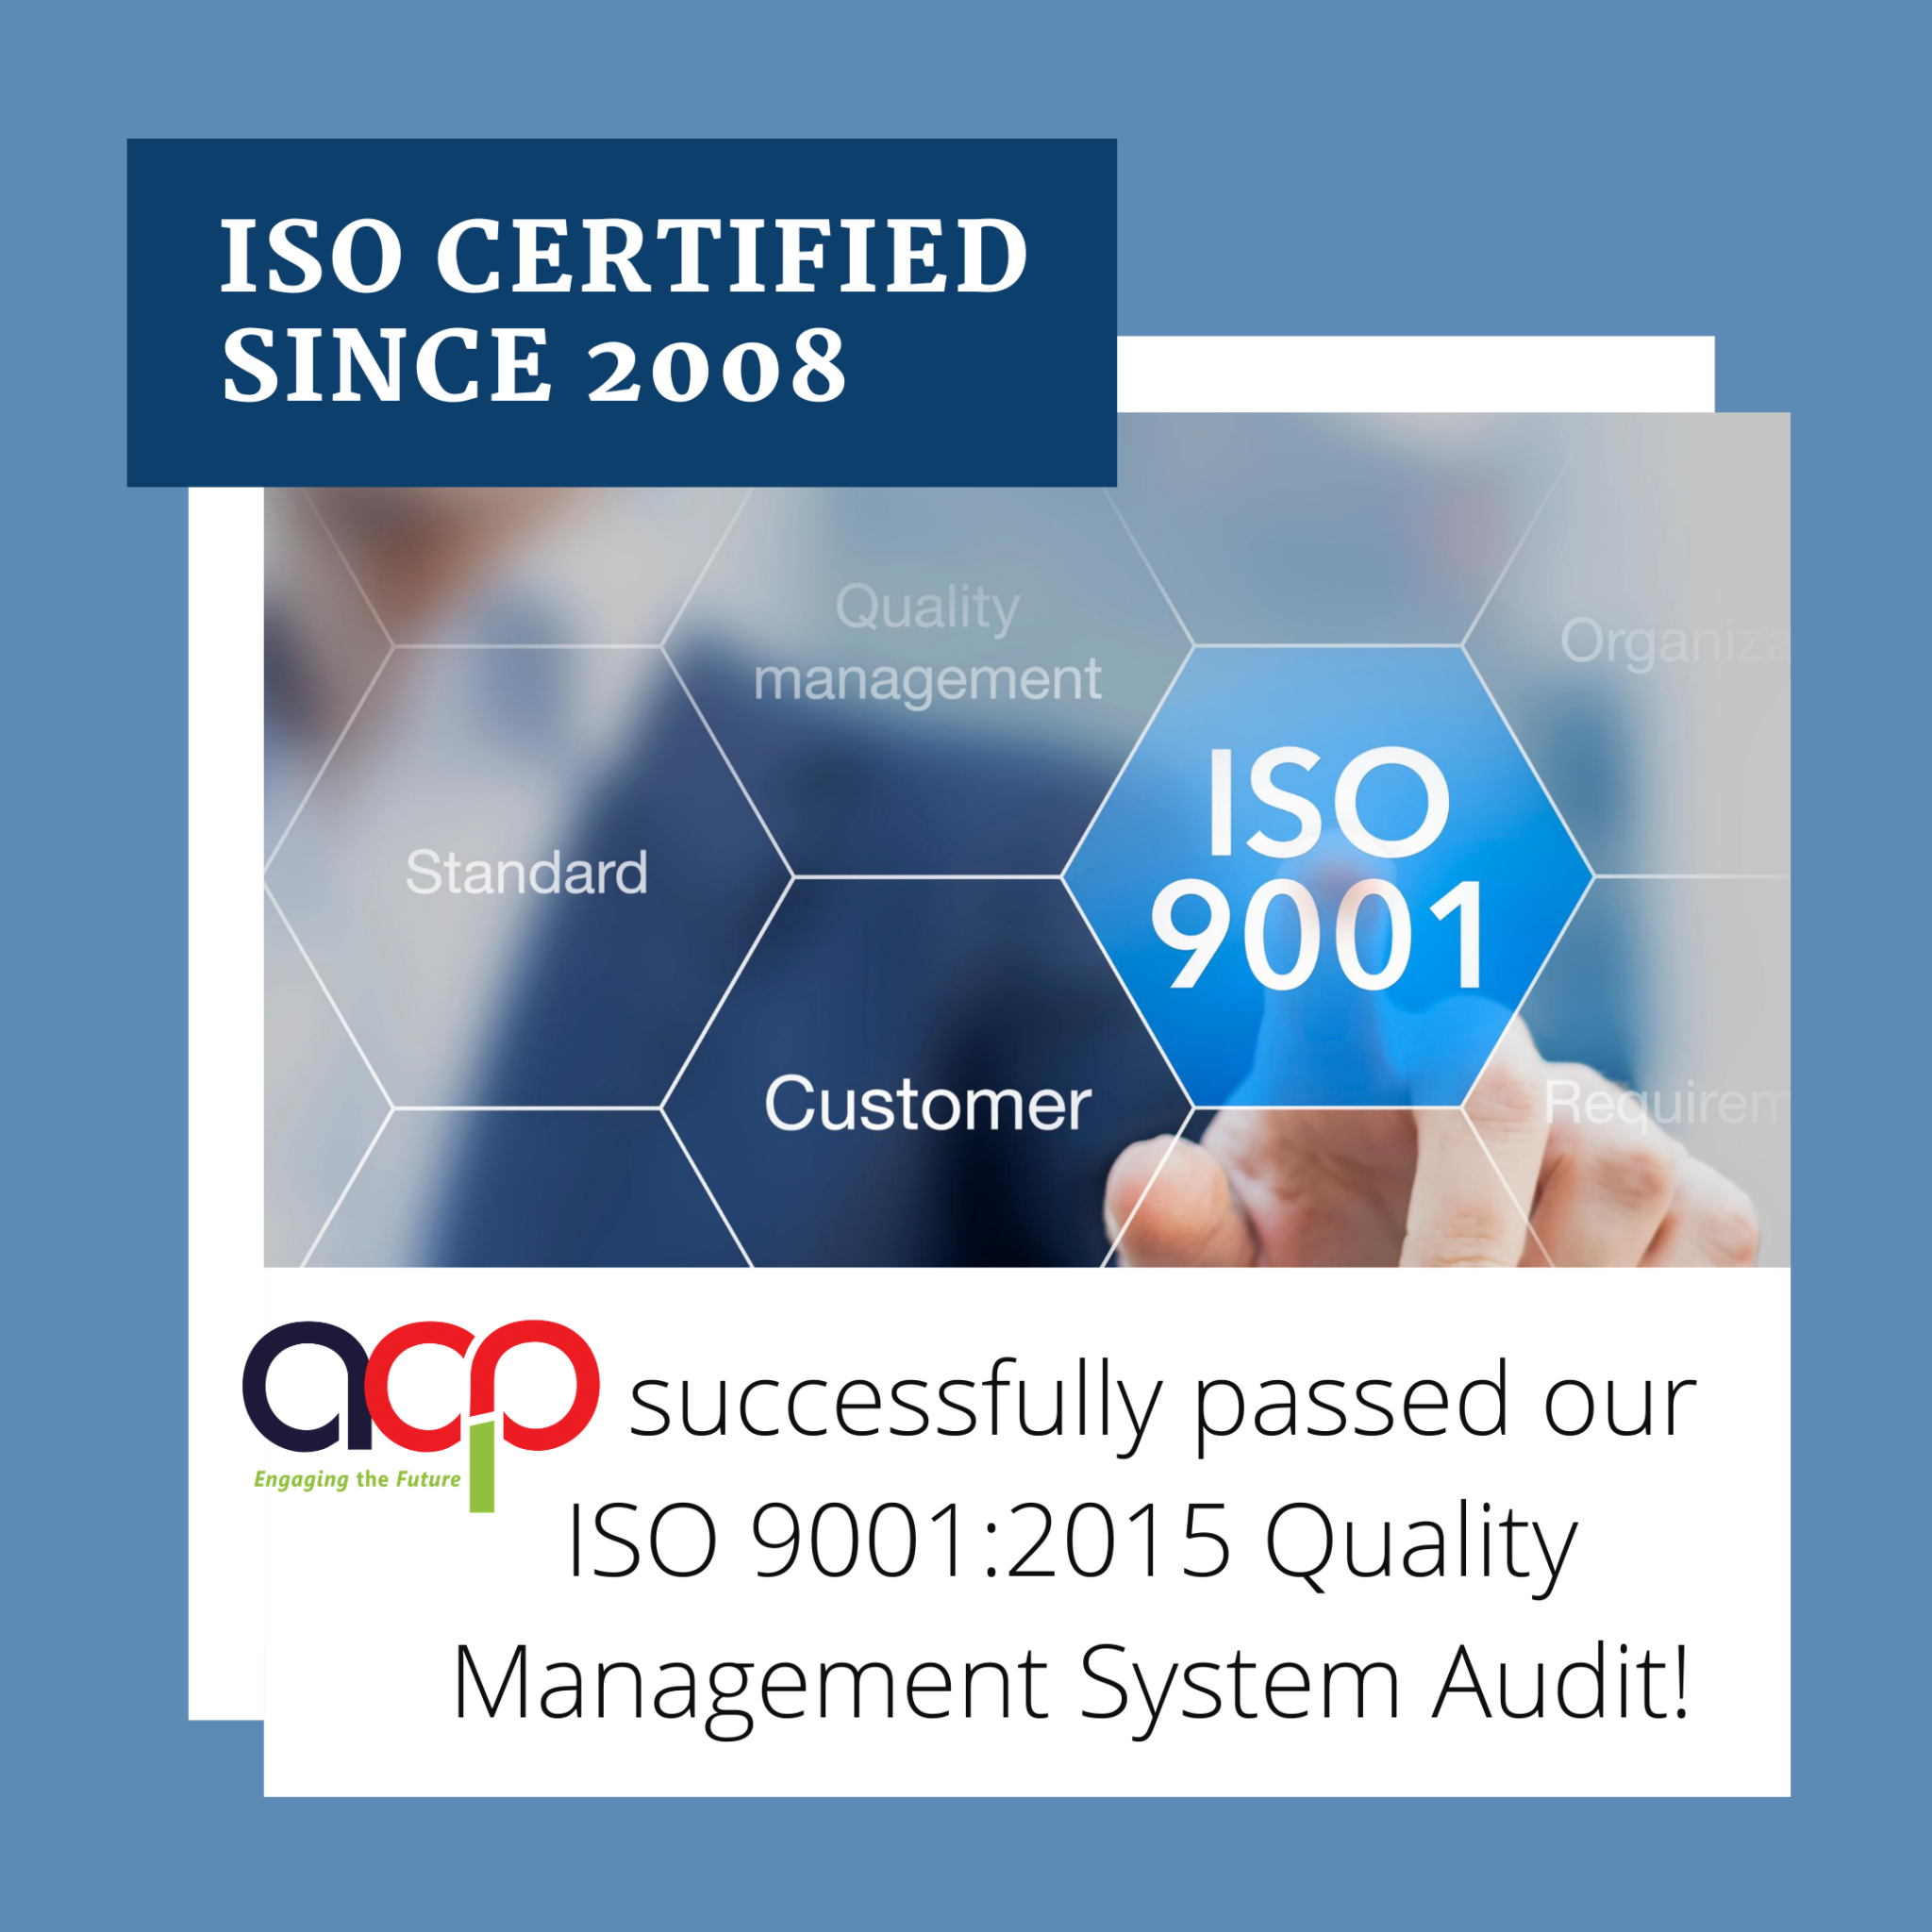 ISO Certified Since 2008